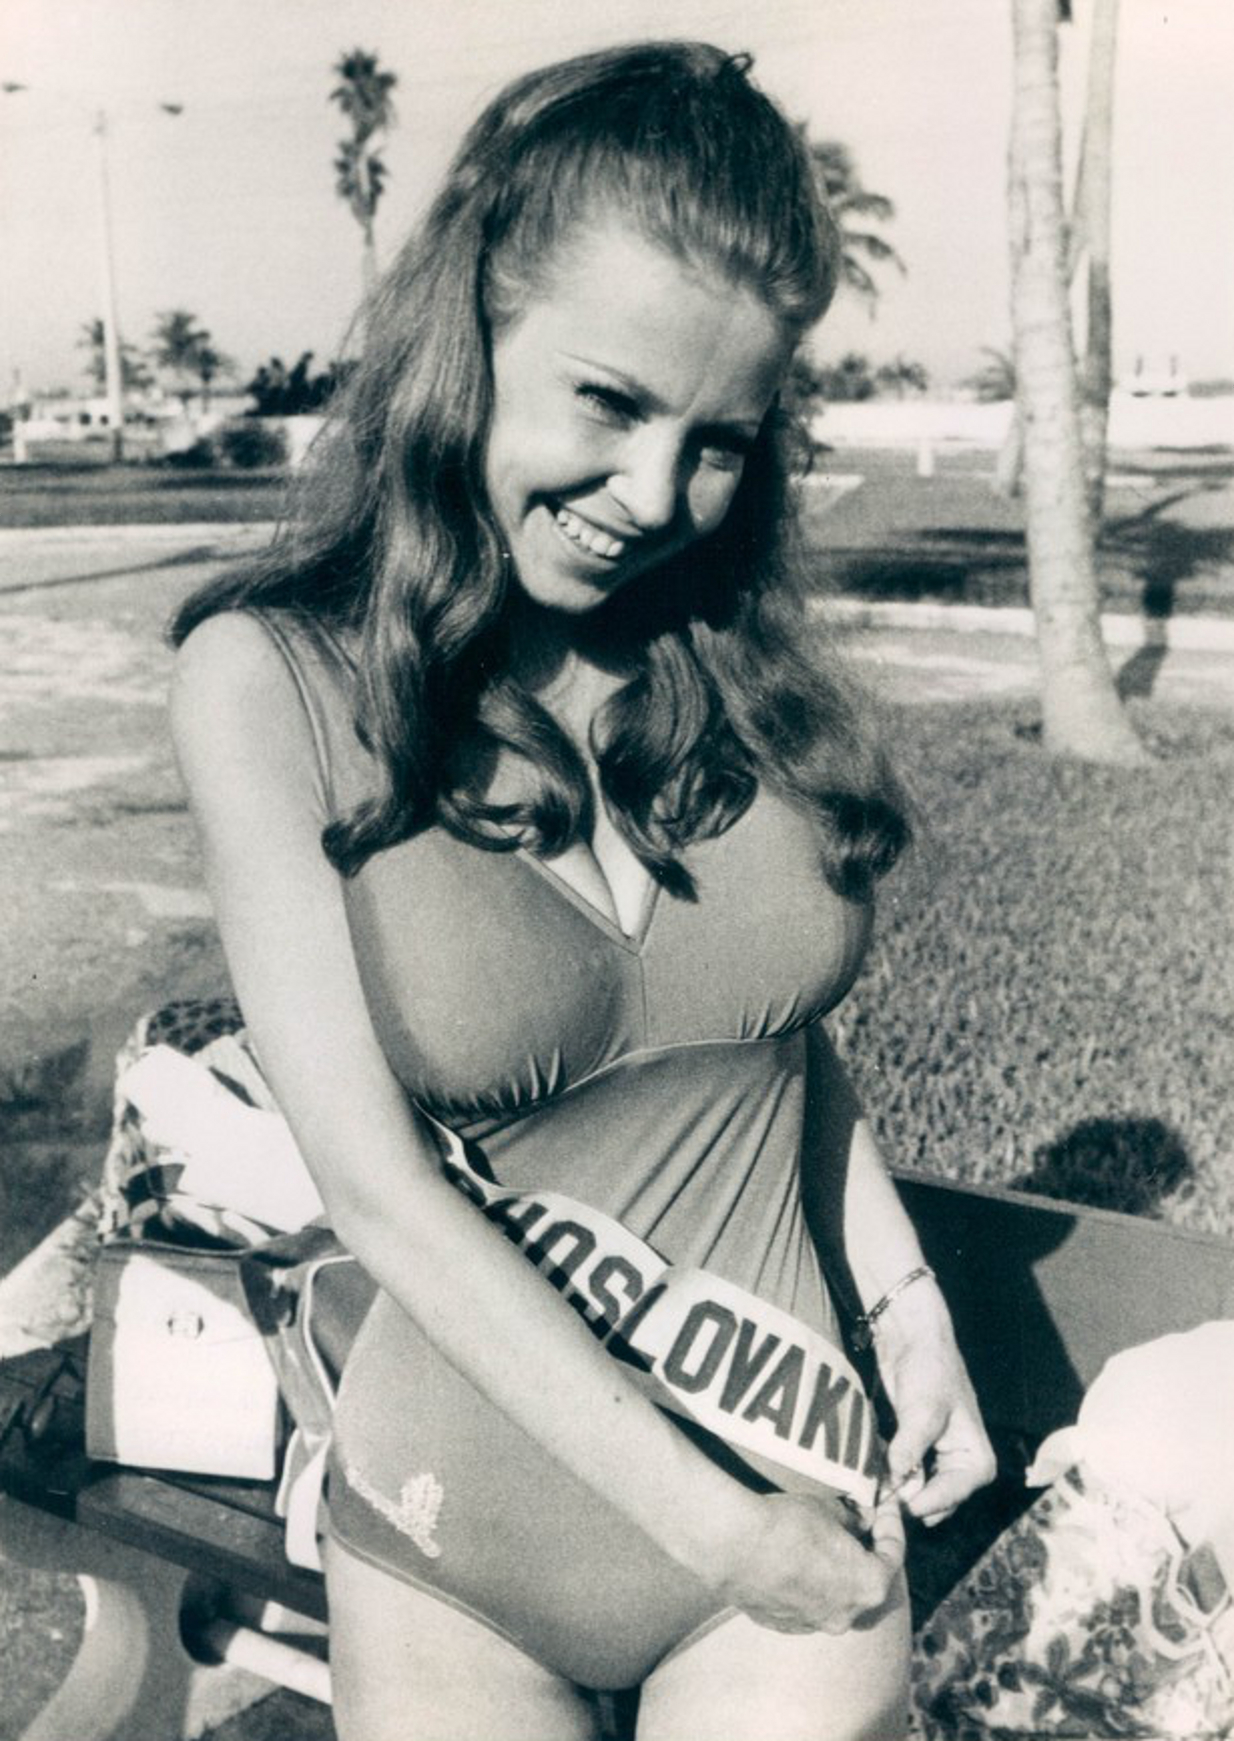 Miss Universe Contestant 1970